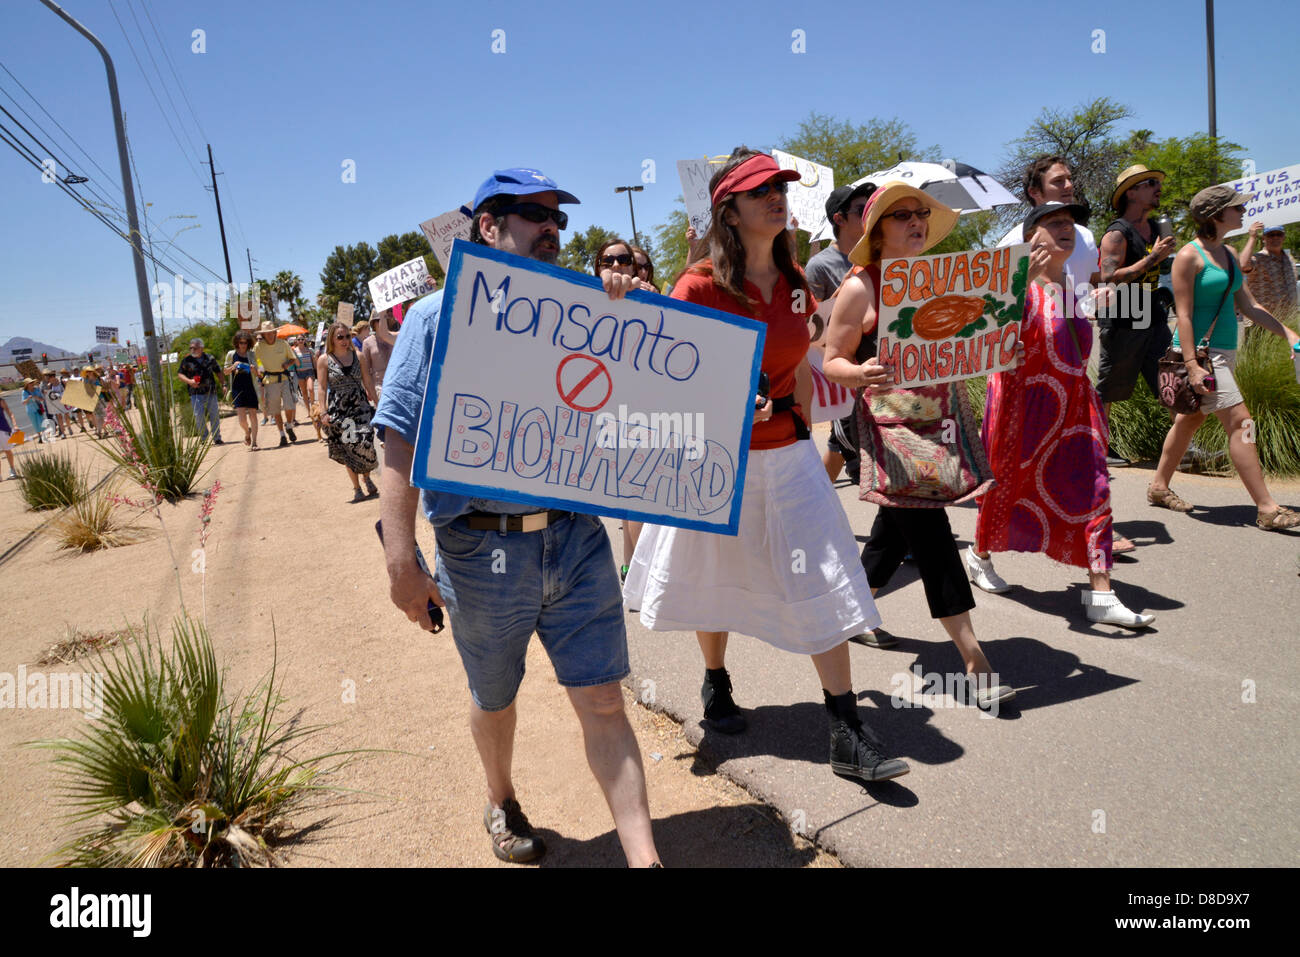 Tuscon, Arizona, USA. 25th May, 2013. About 1,000 protesters participated in a march organized by Monsanto Free Stock Photo